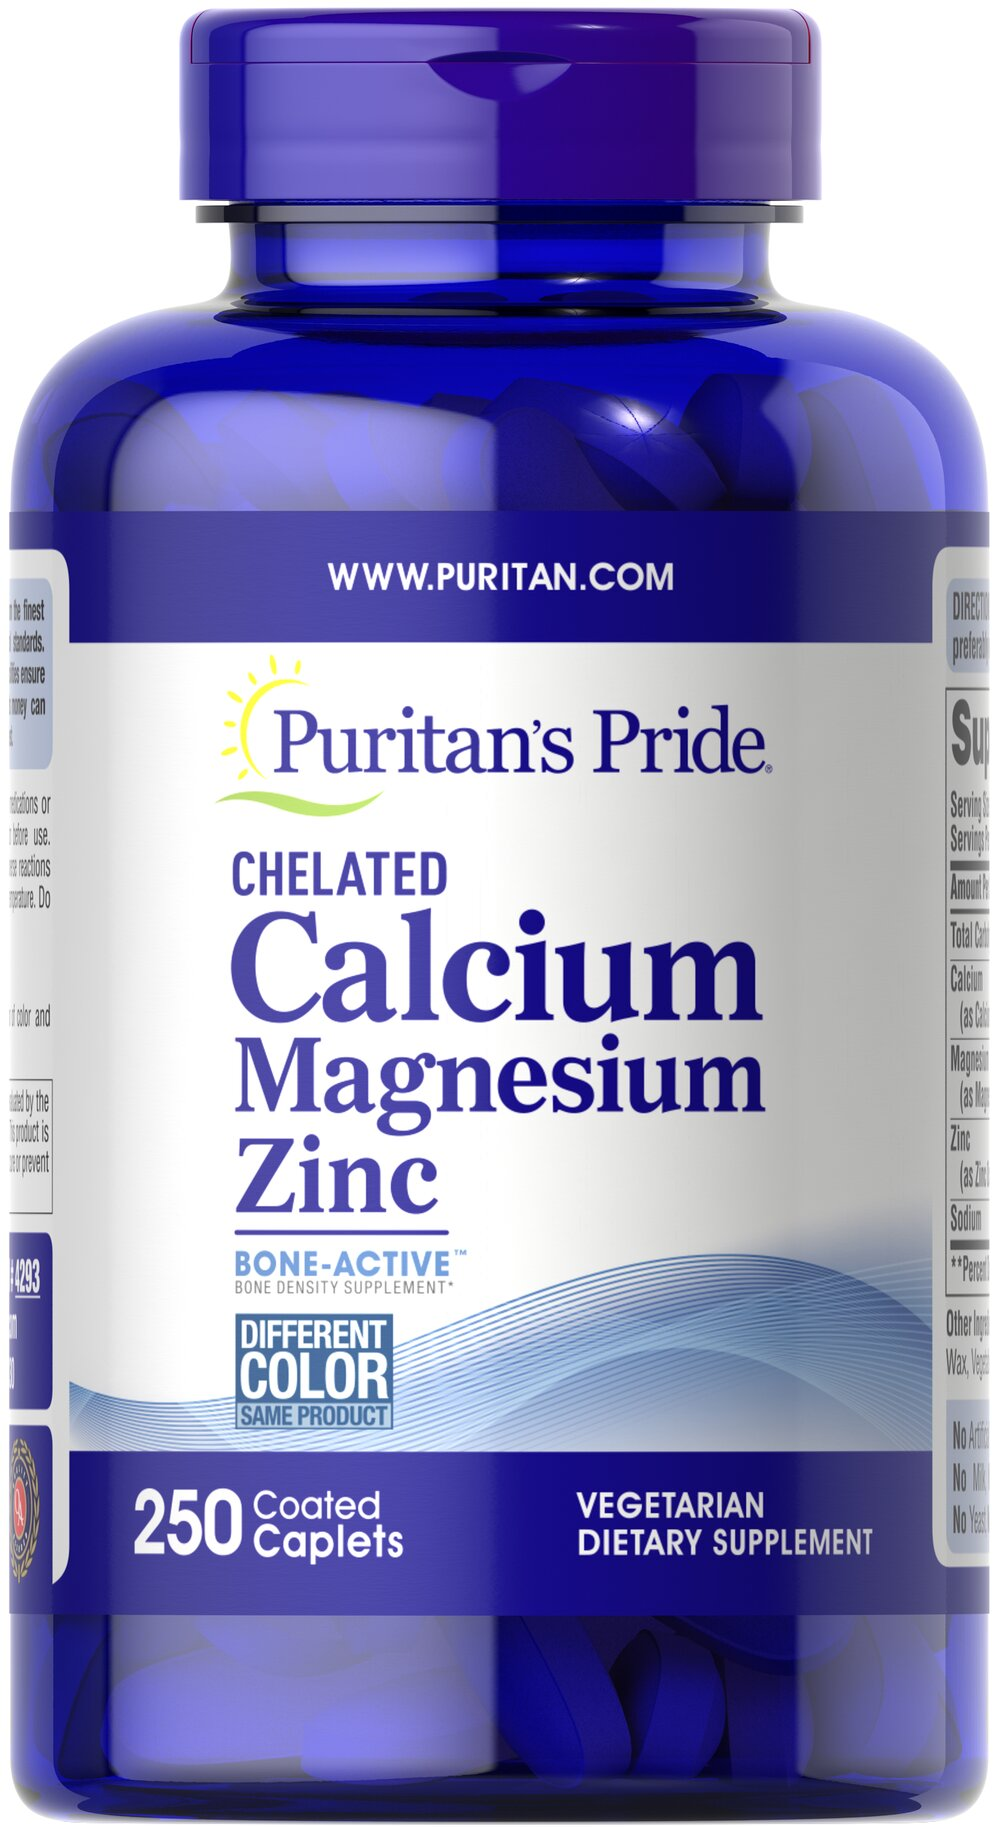 Chelated Calcium Magnesium Zinc